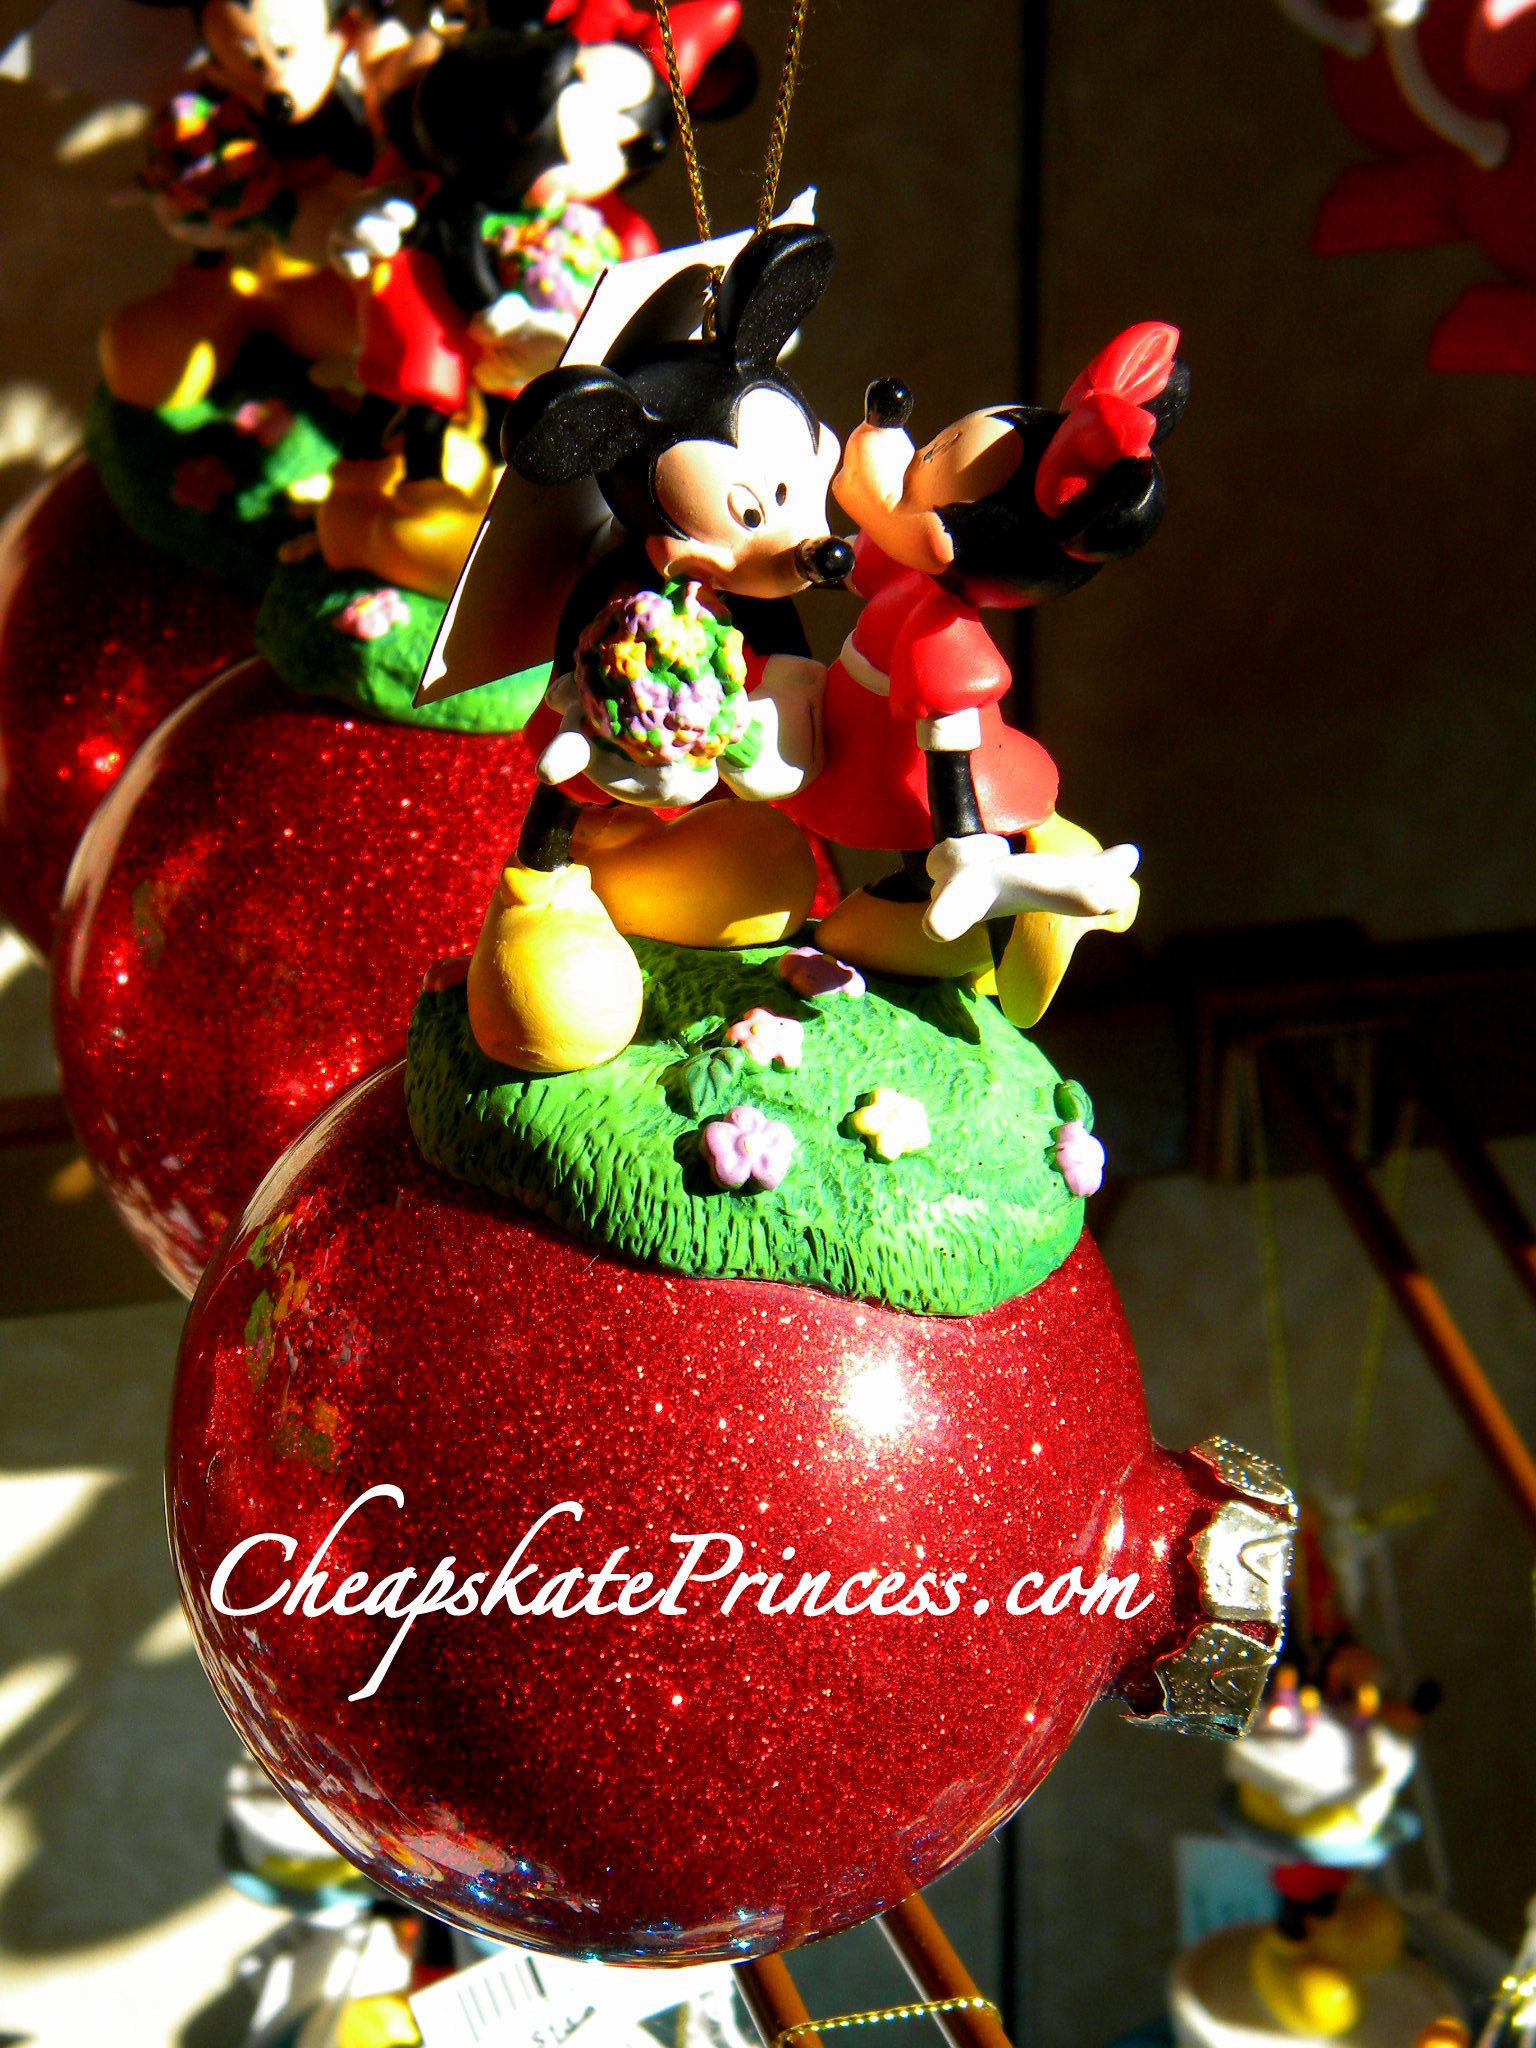 mickey minnie mouse christmas mickey minnie ornament - Minnie Mouse Christmas Ornament